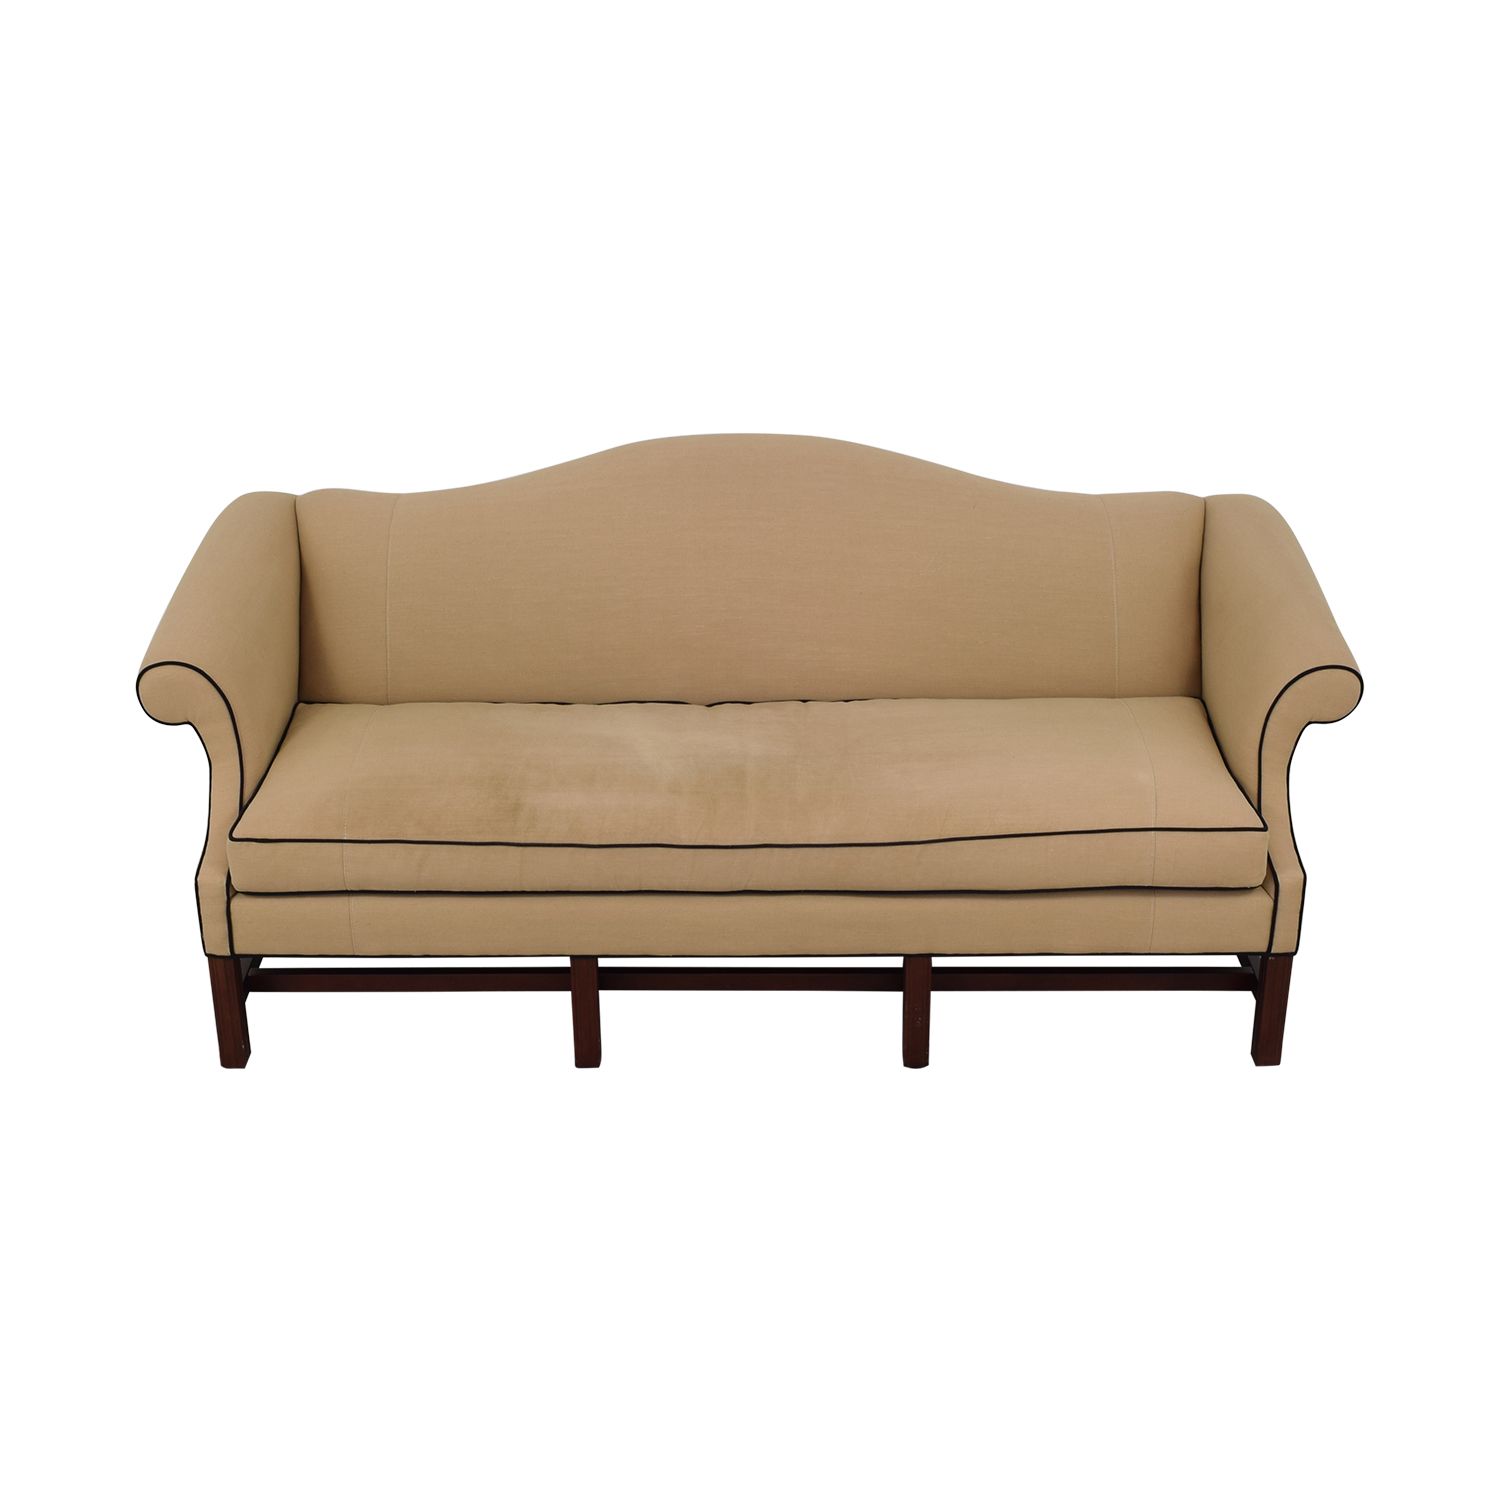 Upholstered Camel Back Sofa for sale